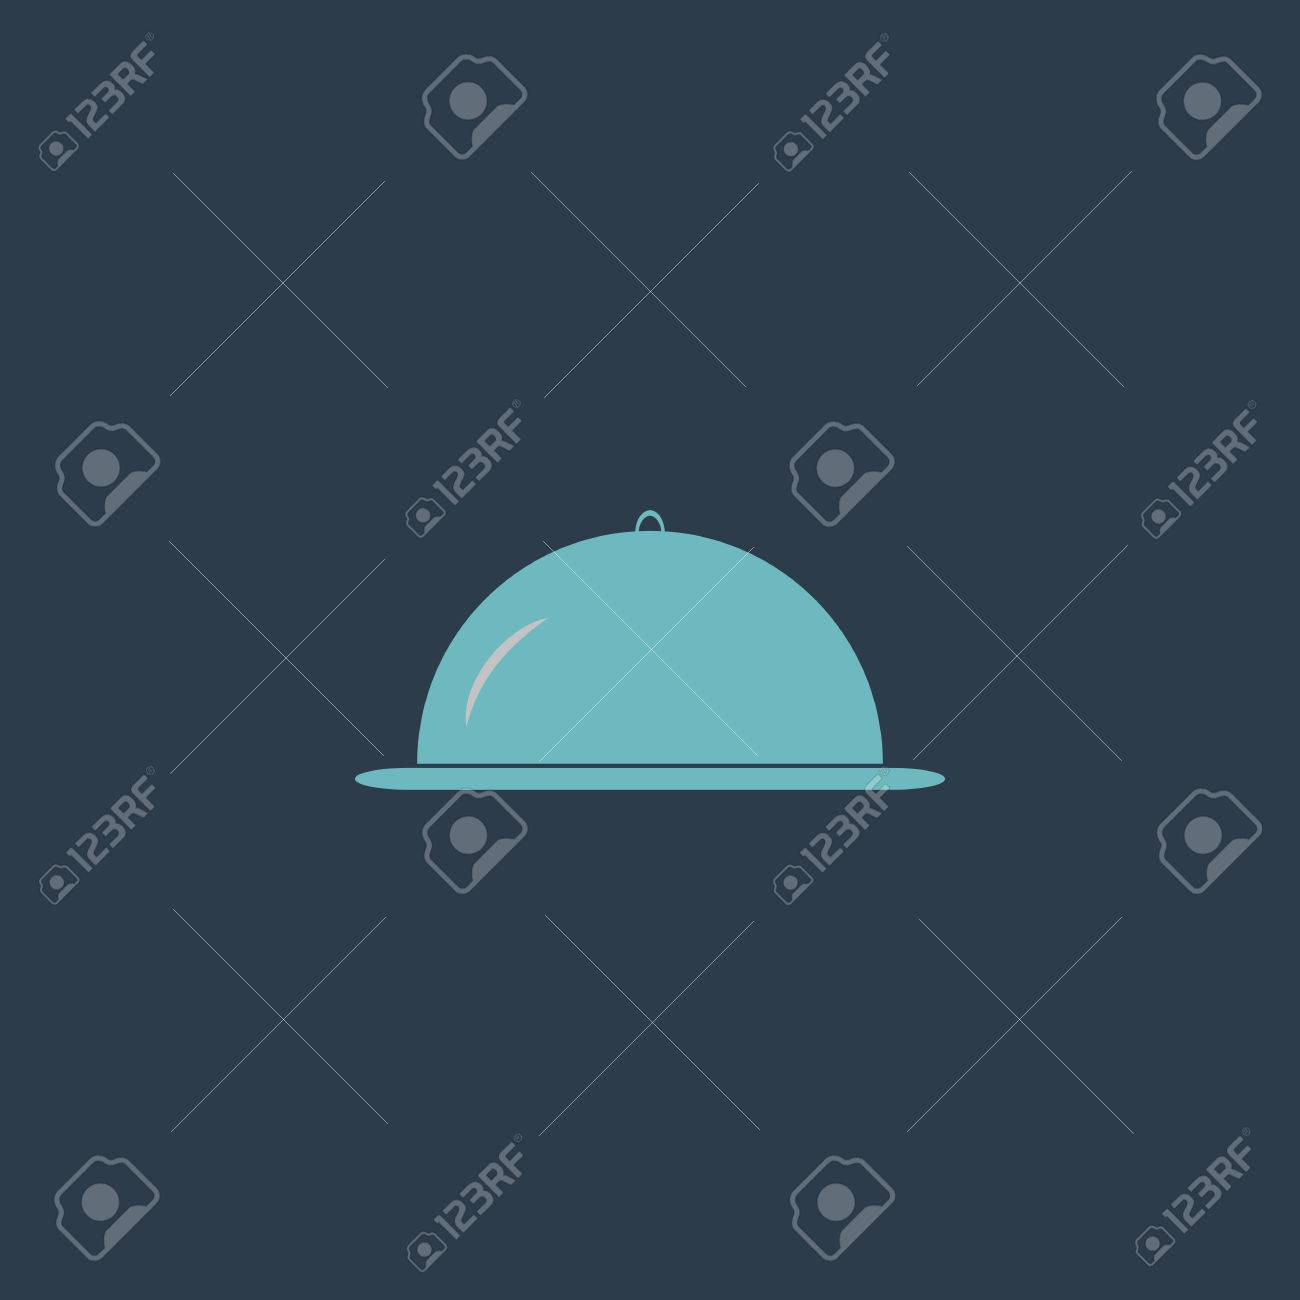 Restaurant Cloche Colorful Vector Icon Simple Retro Color Modern Royalty Free Cliparts Vectors And Stock Illustration Image 51448268